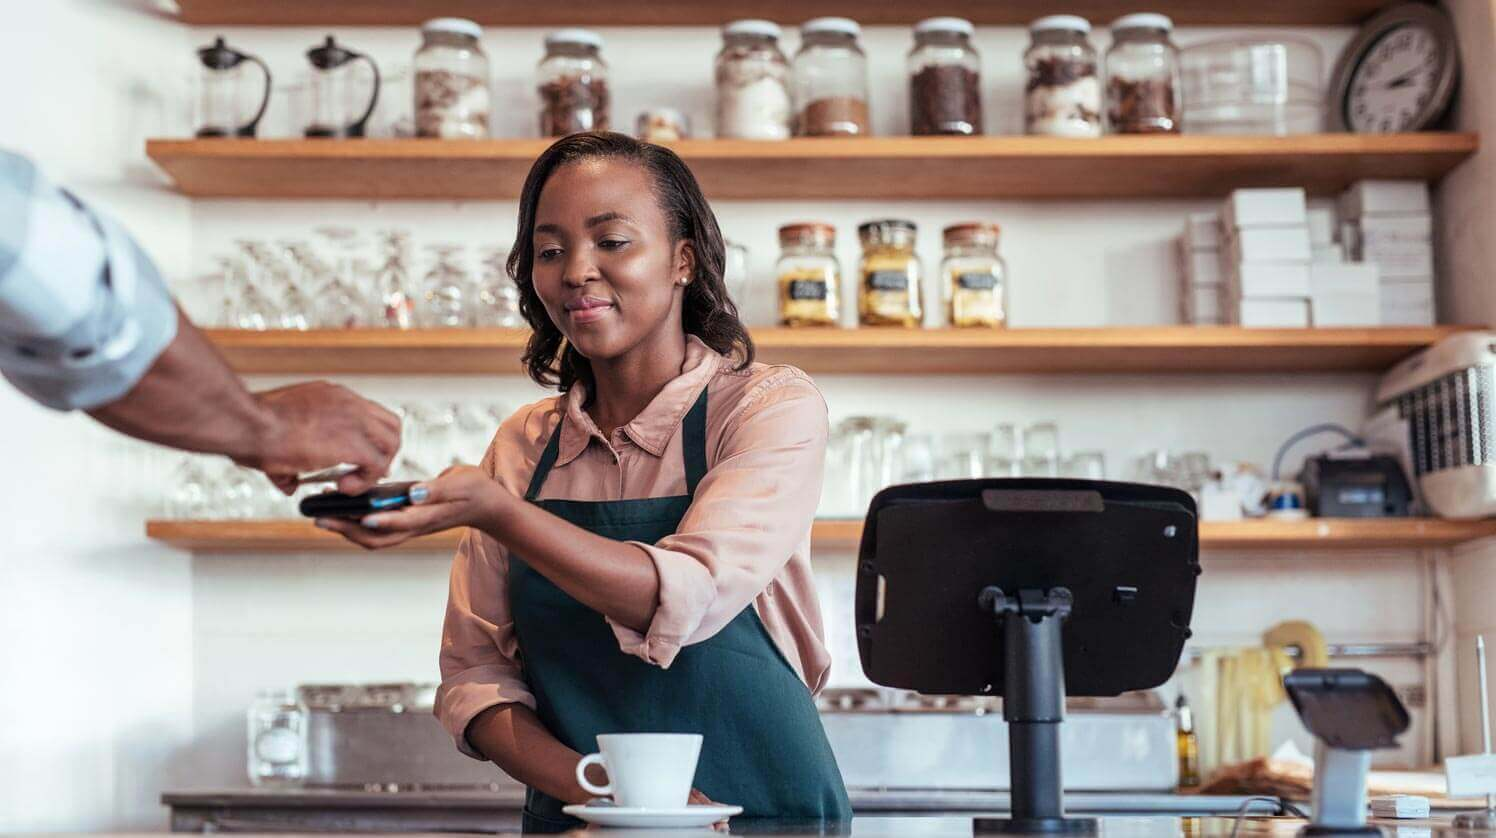 Cash Flow Management For Small Business